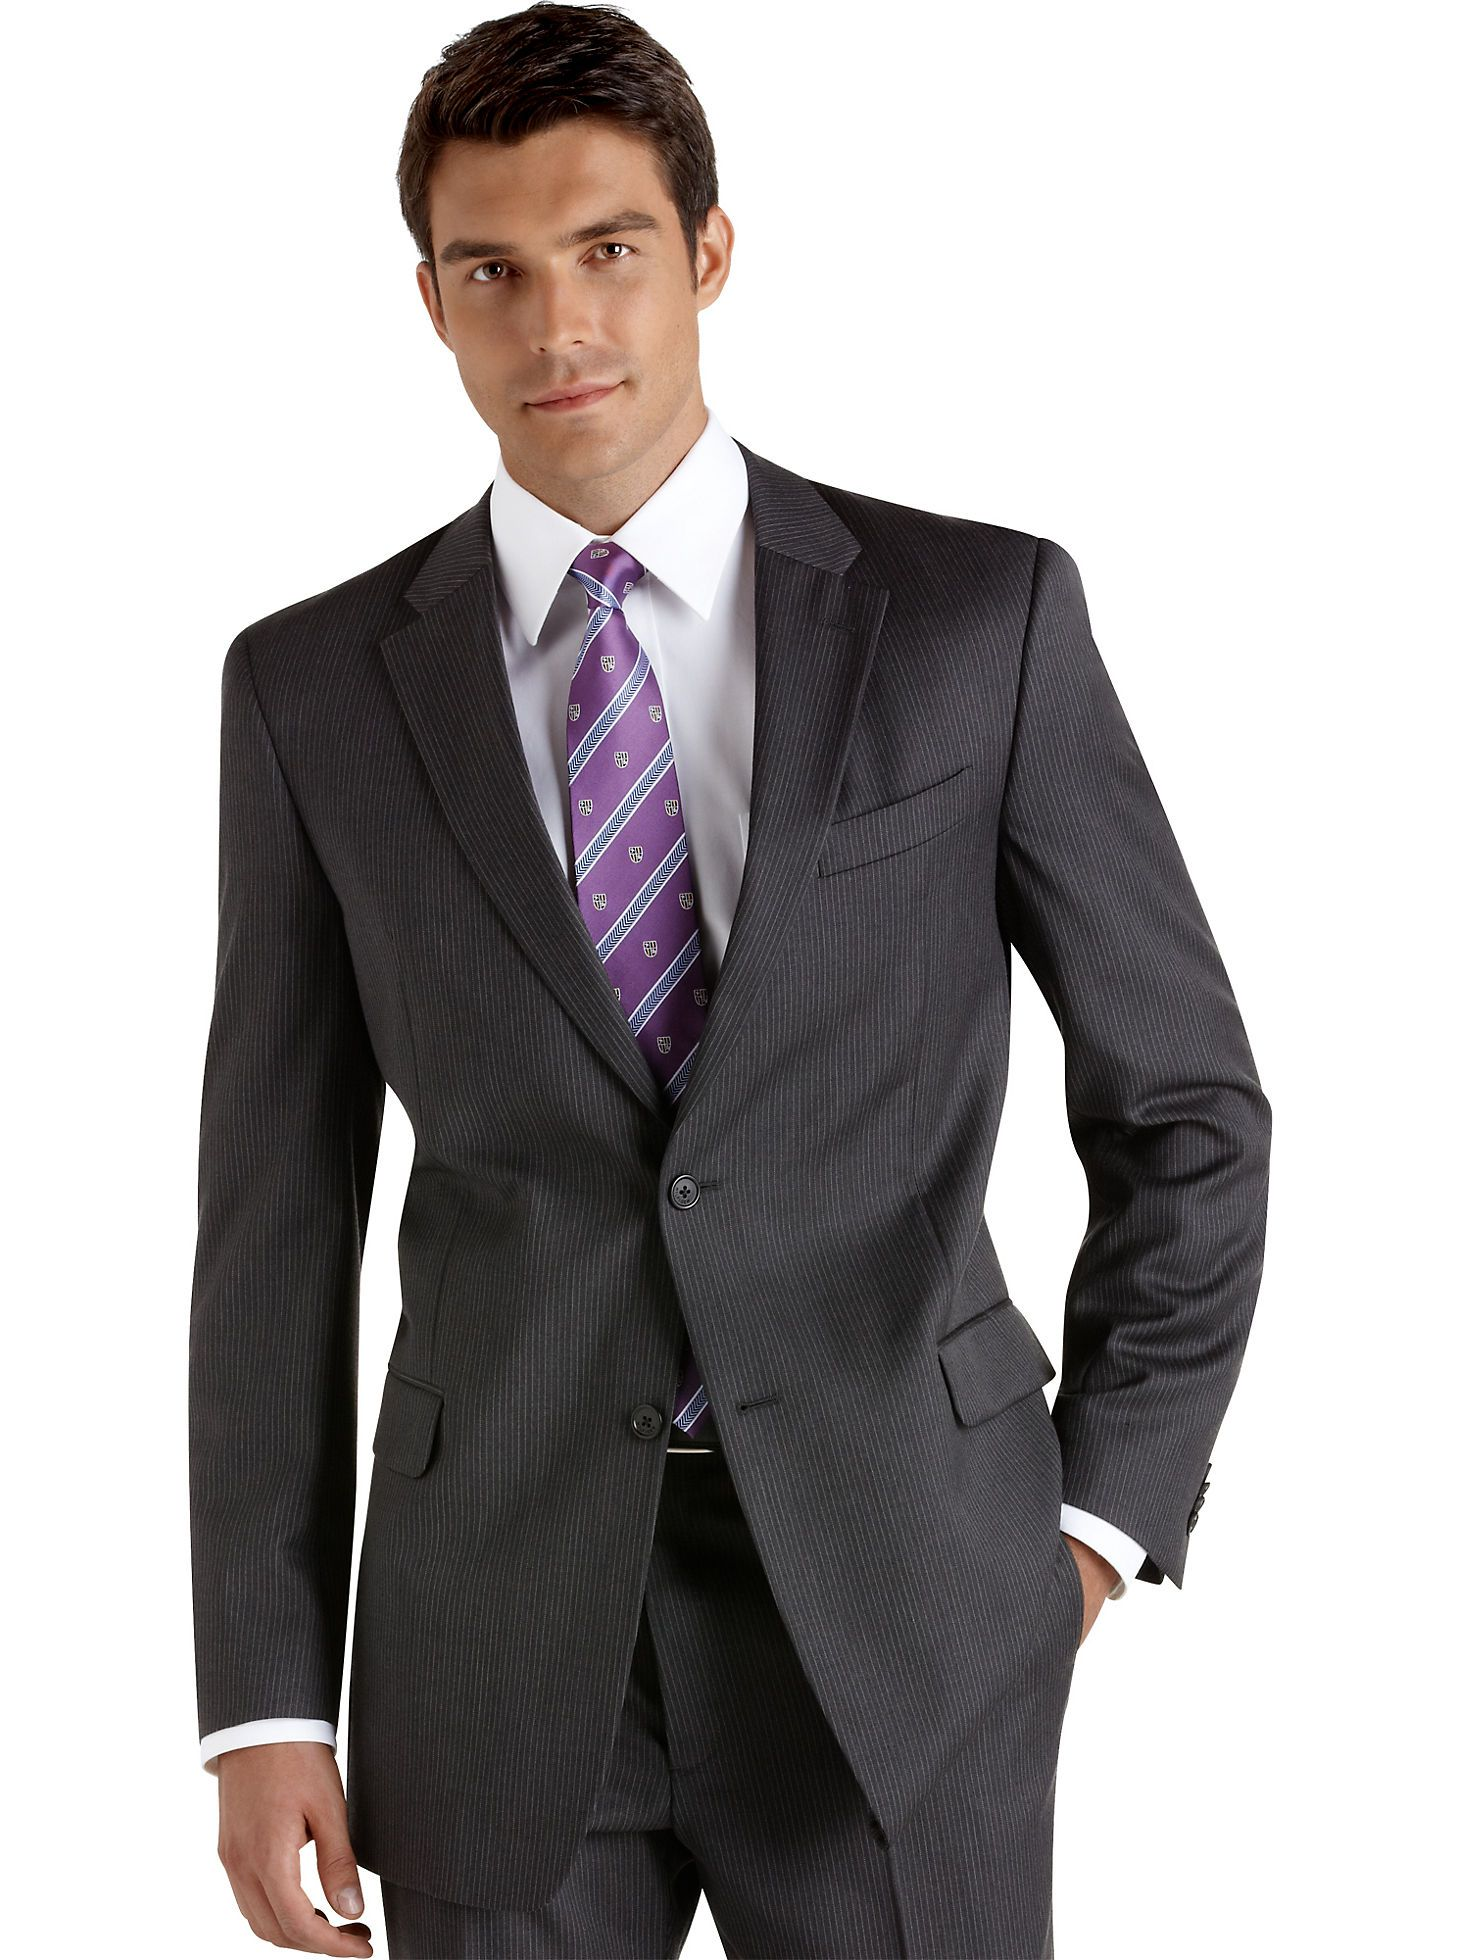 Bar III Charcoal Solid Extra Slim-Fit Jacket | Shops, Suits & suit